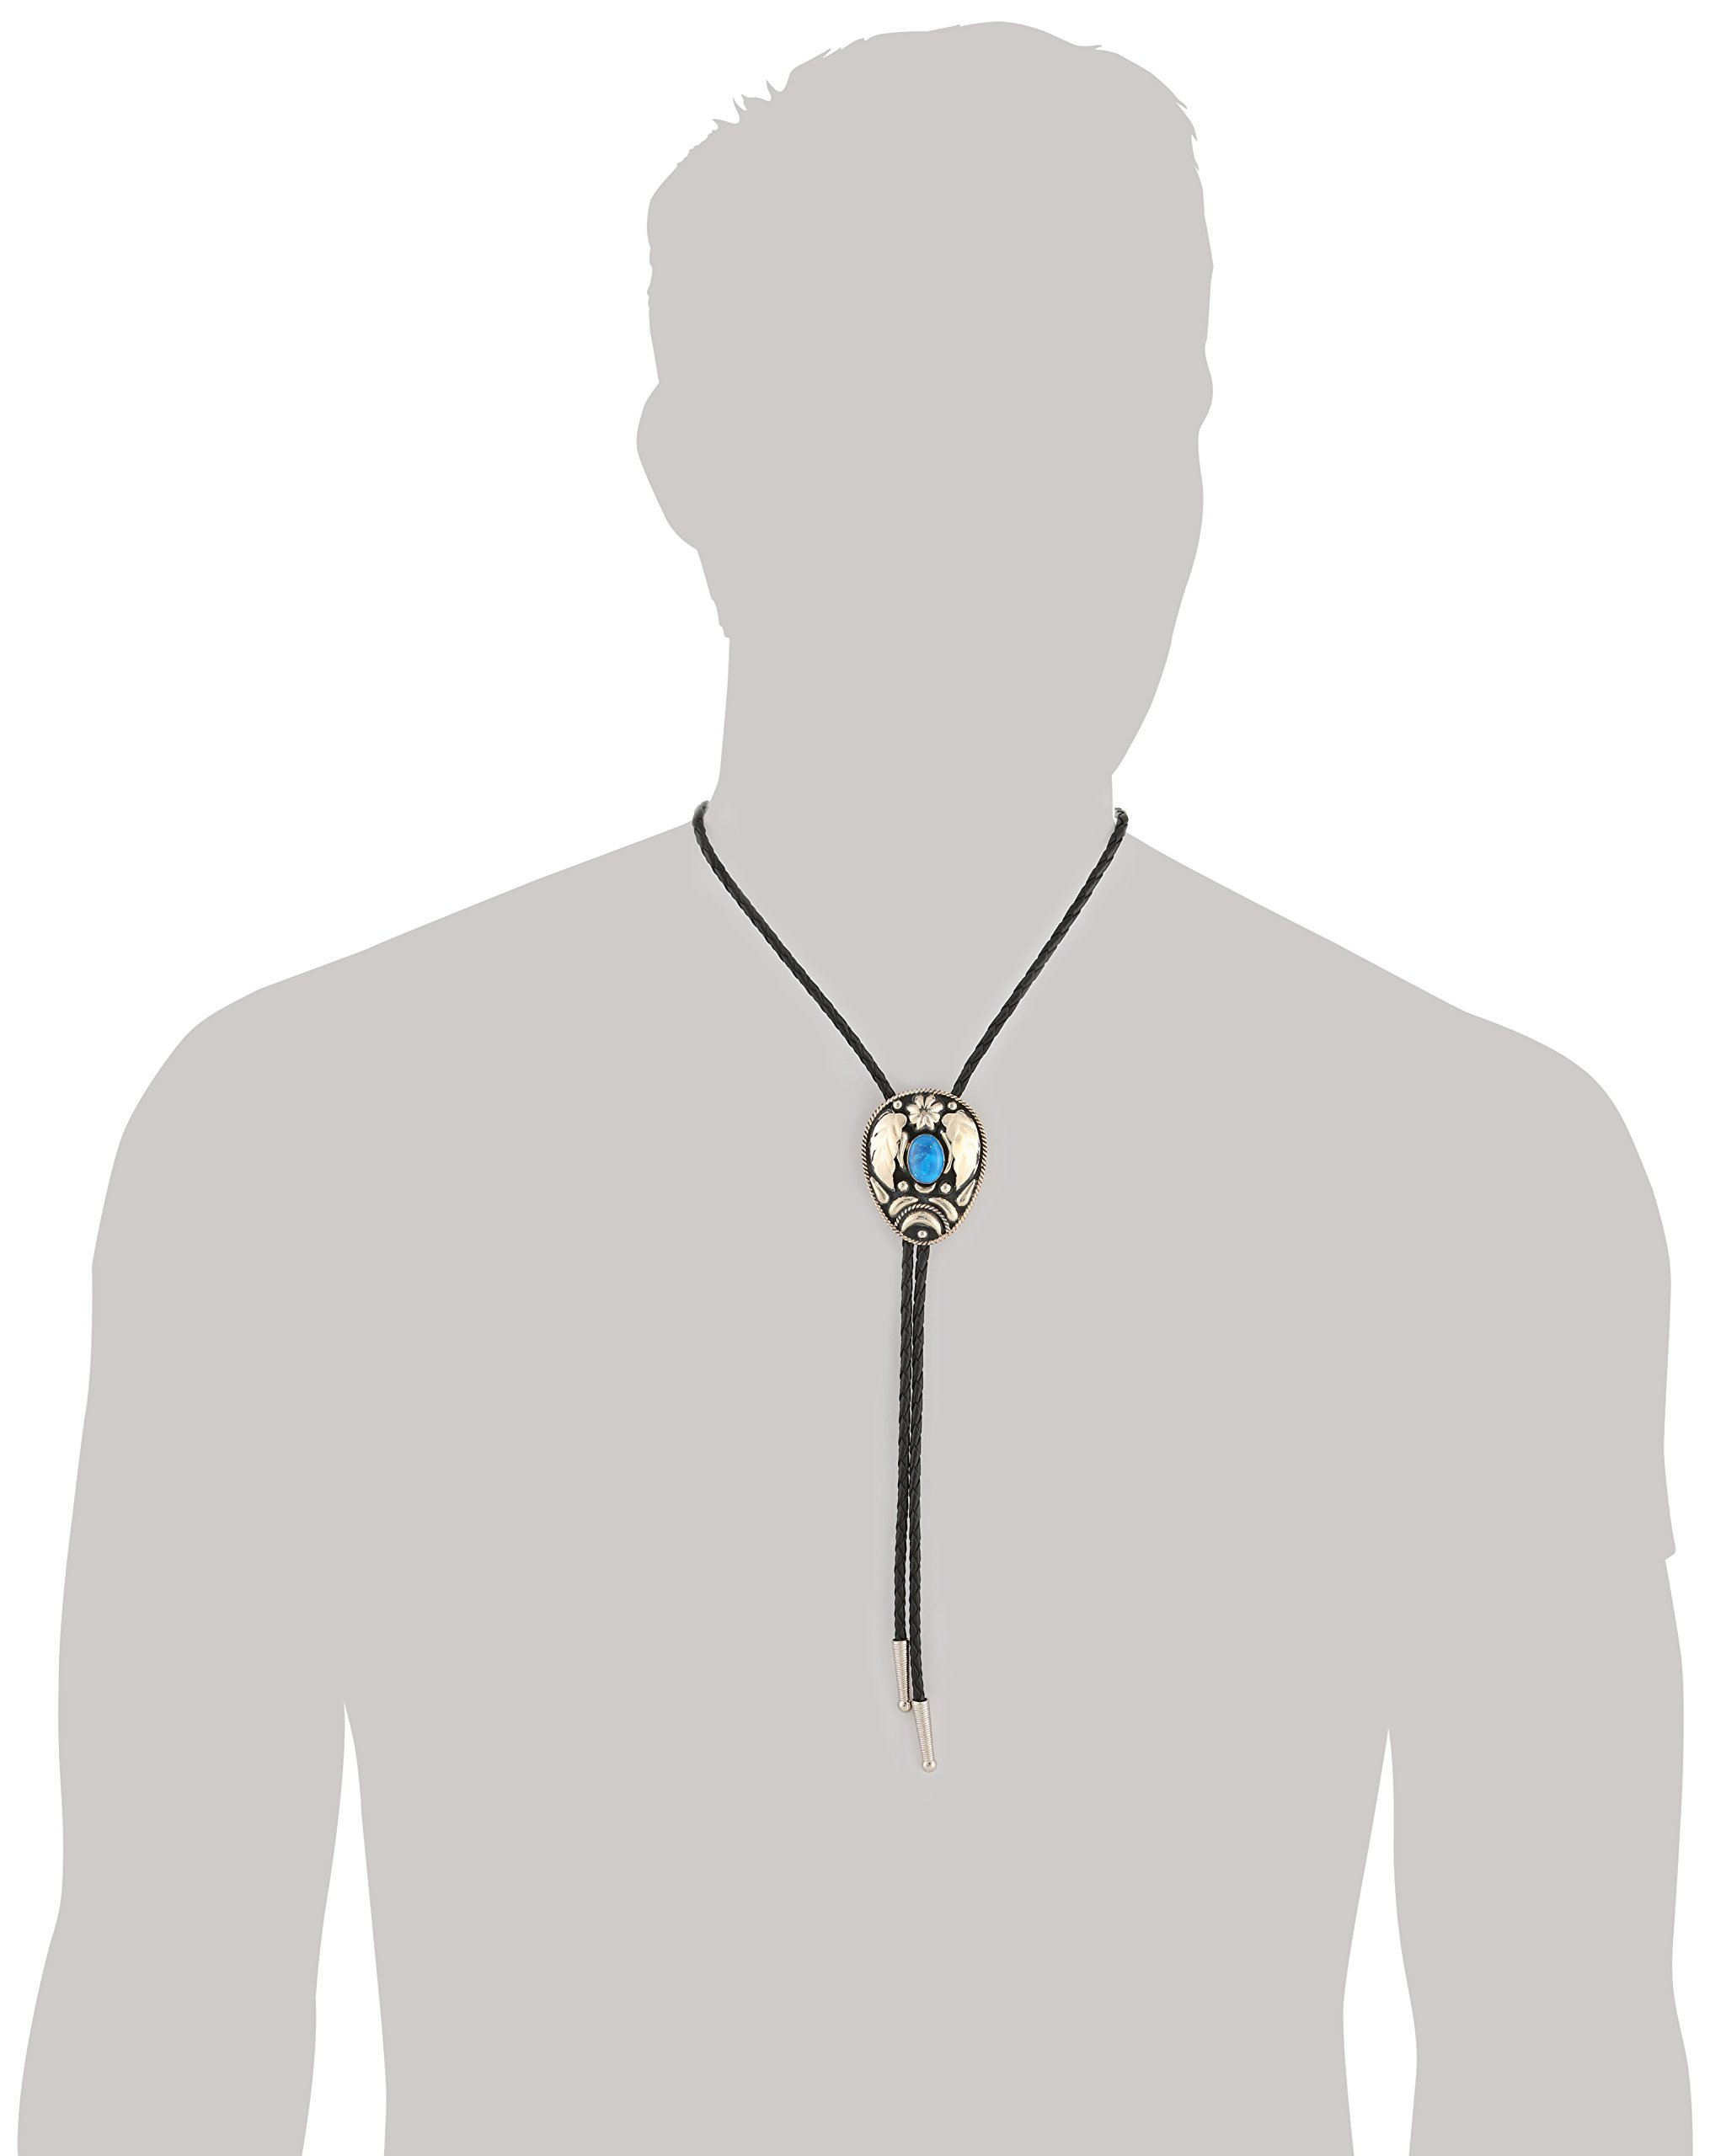 M&F Western Unisex Bolo Tie Silver Leaves/Turquoise Stone One Size by M&F Western (Image #2)